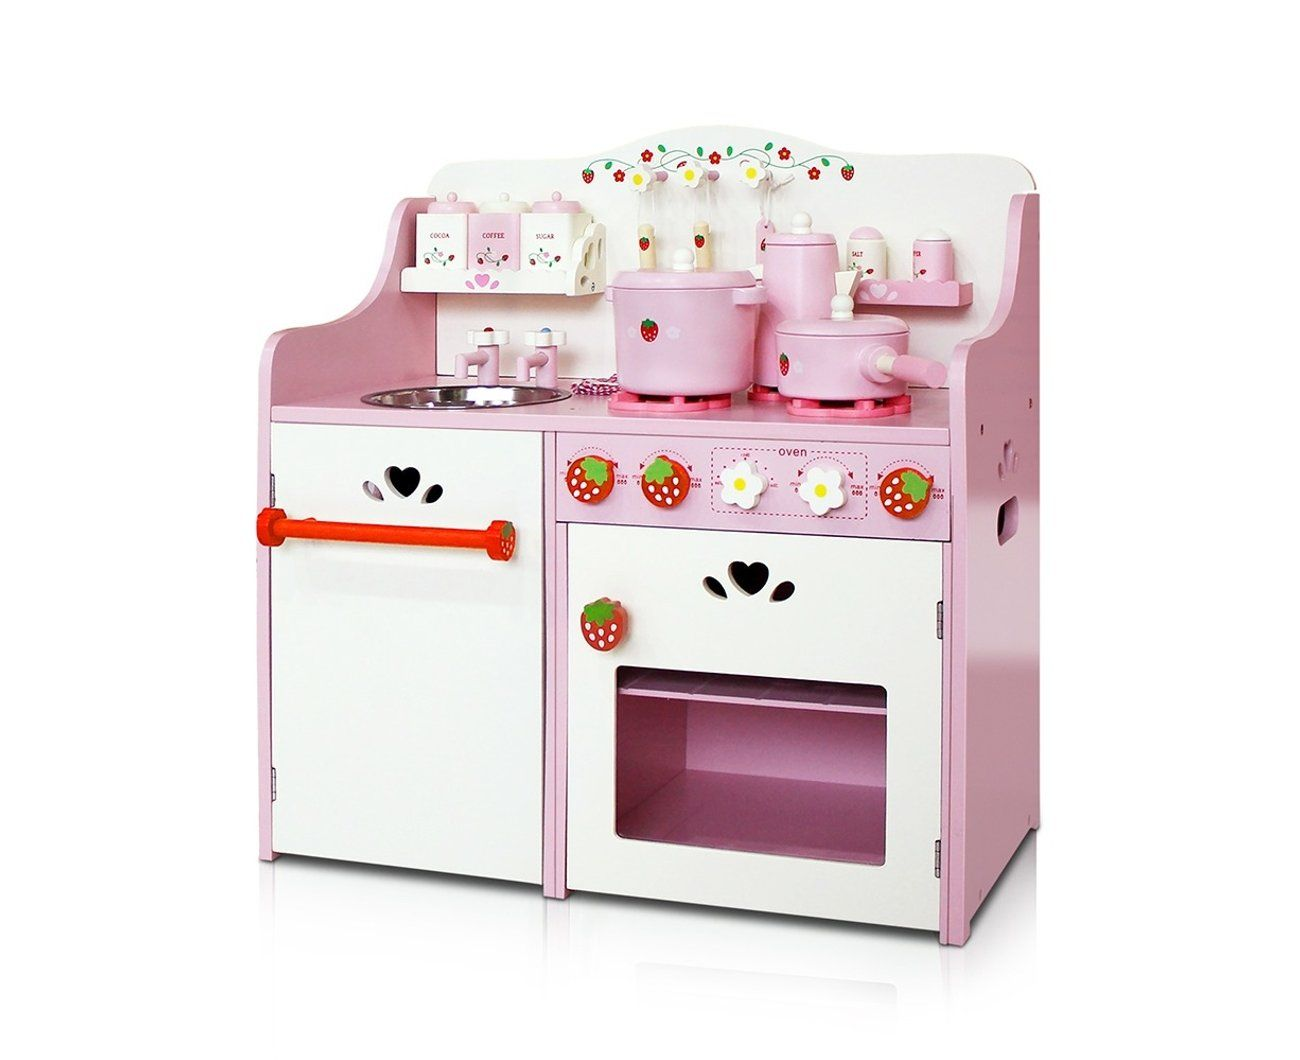 Kids Kitchen Play Set Wooden Pretend Play Sets Childrens ...